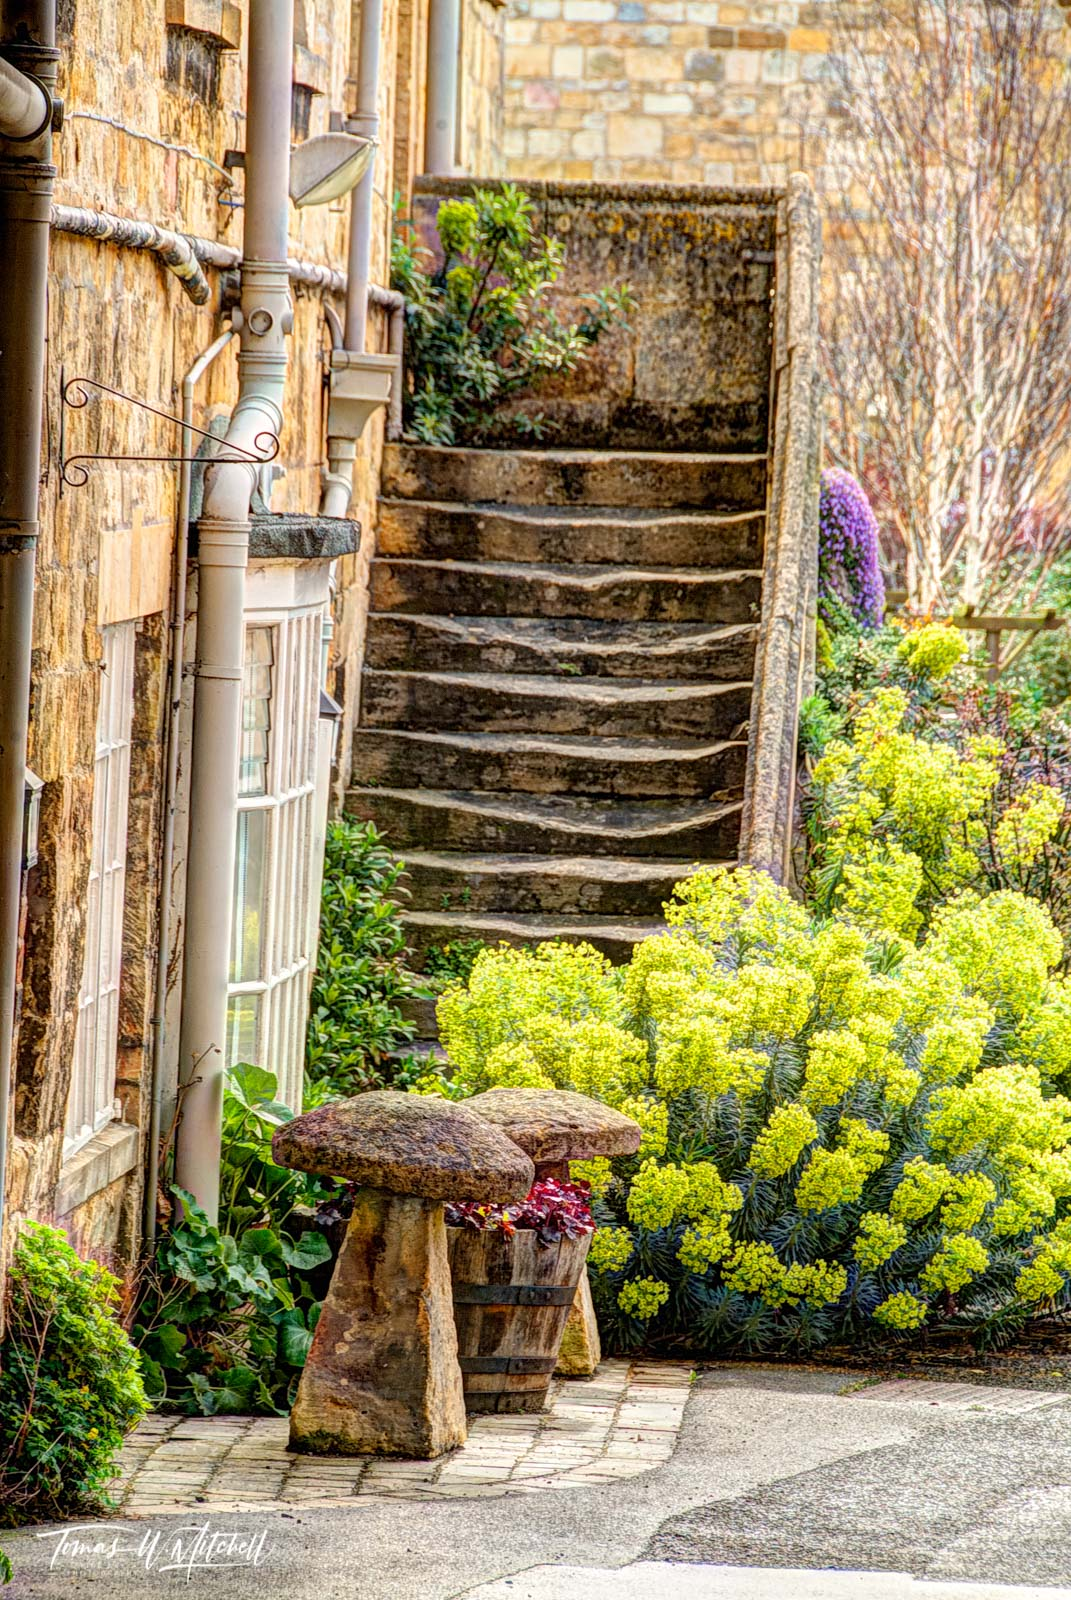 limited edition, museum grade, fine art, prints, photograph, cotswolds, england, stairs, old, still life, photo